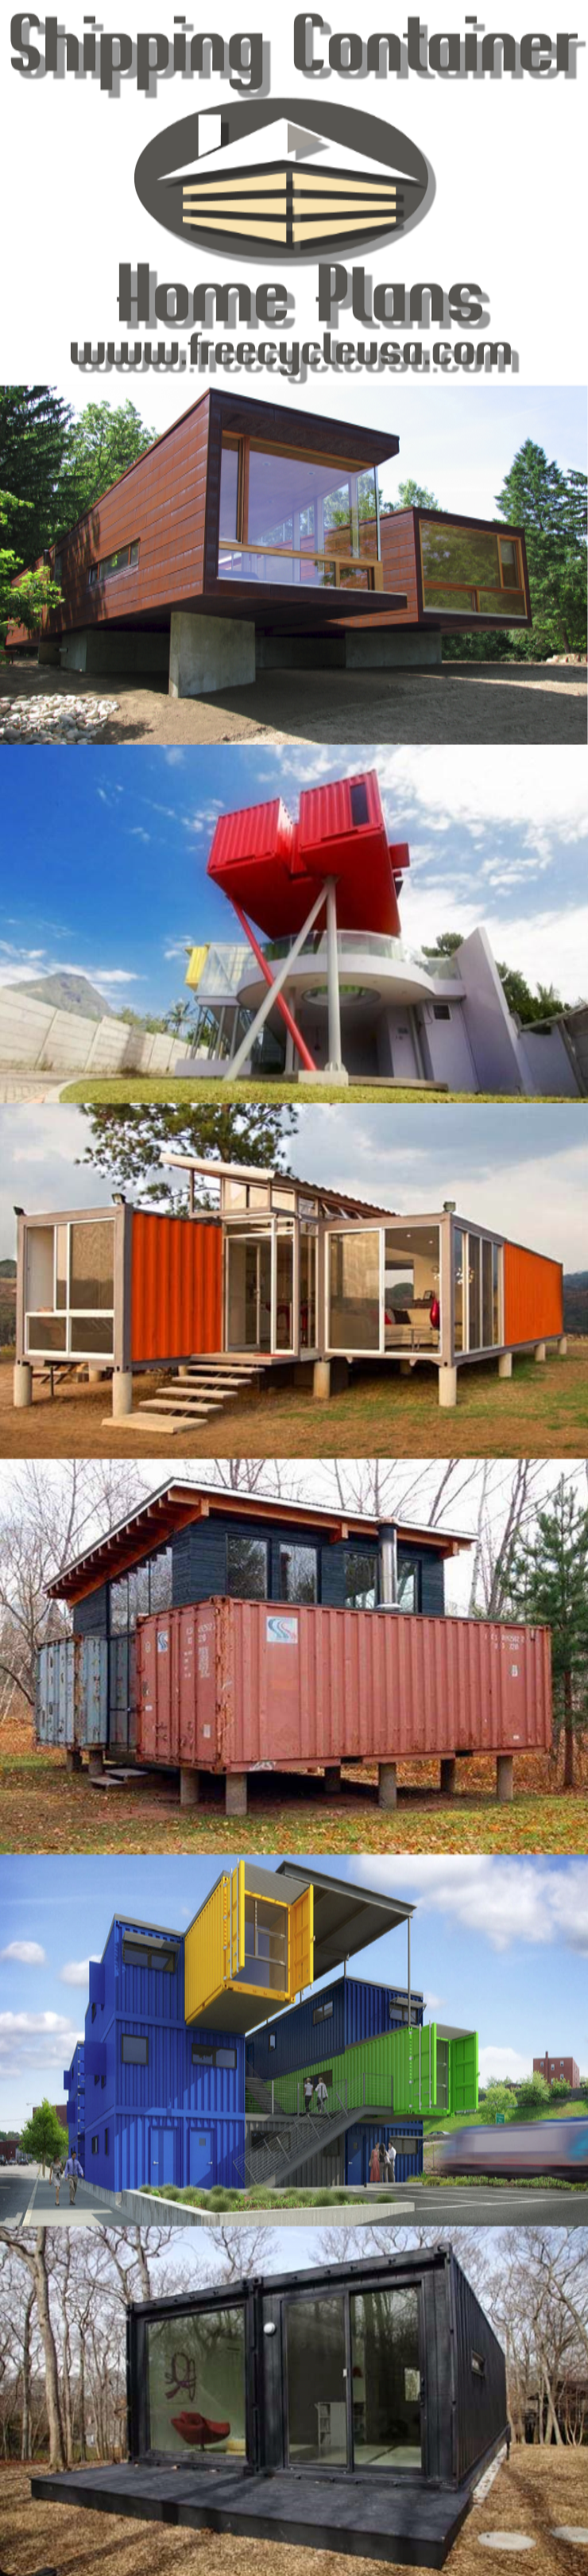 Shipping Container Home Great Design and Construction Ideas On How To Build A Shipping Container House And Live In!